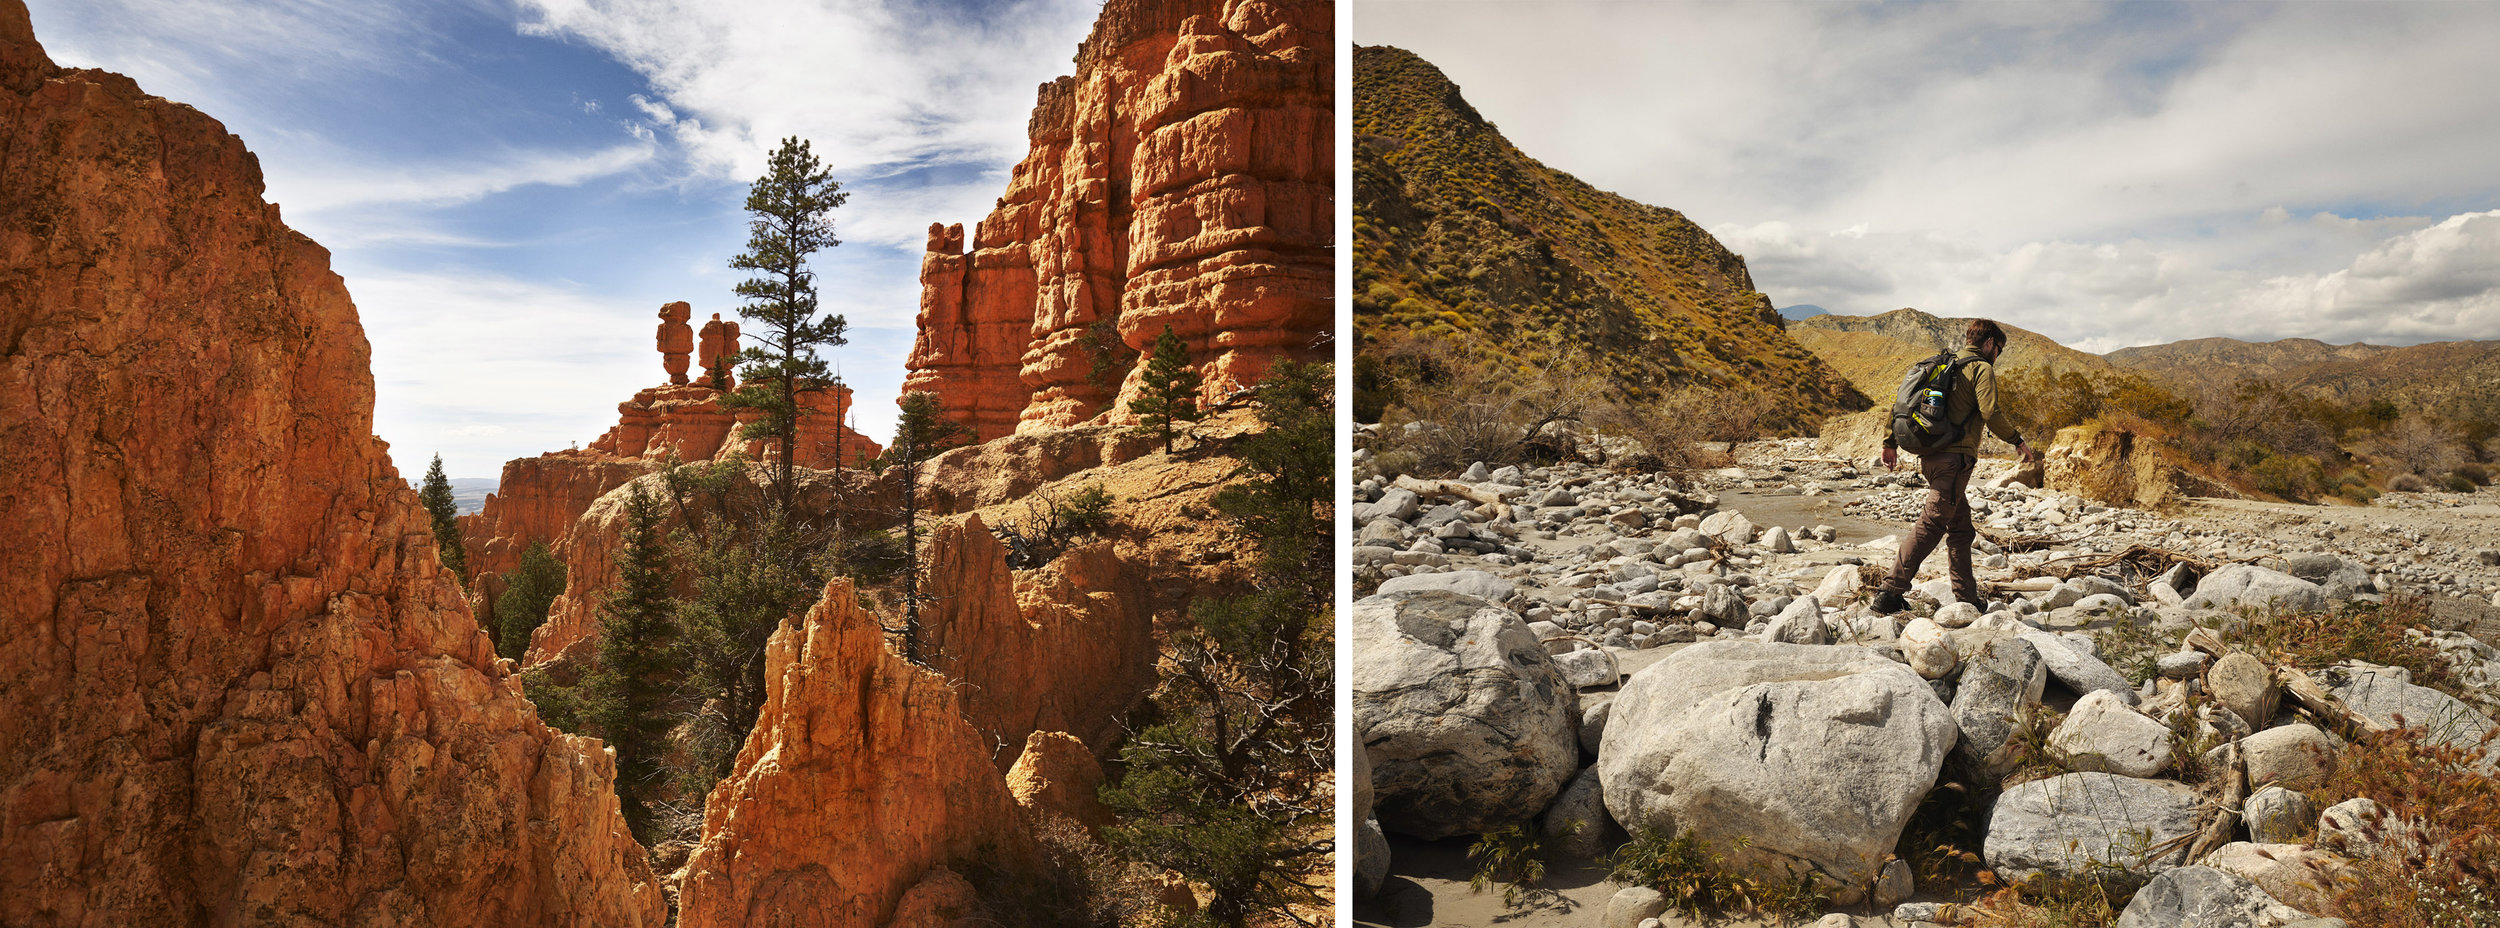 Left: Red Canyon, Utah Right: Sand to Snow National Monument, California